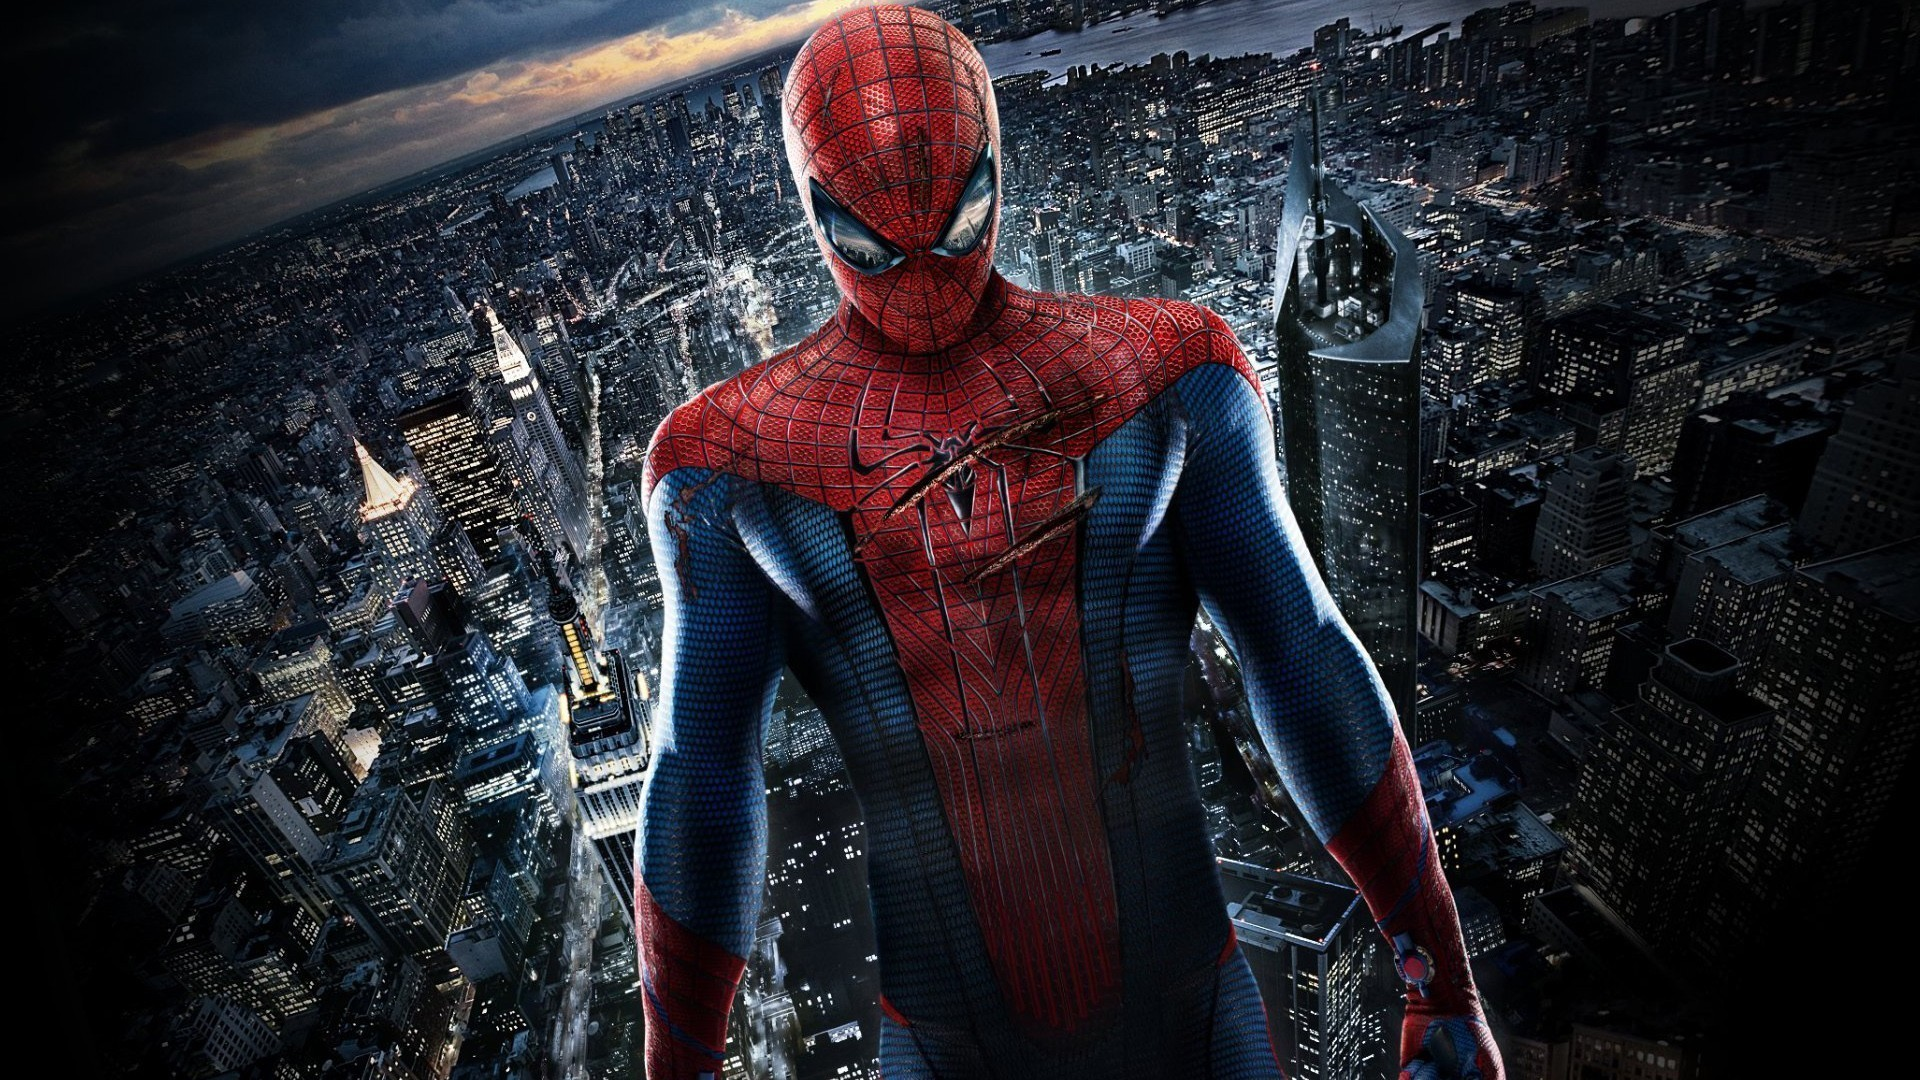 45537 download wallpaper Cinema, People, Spider Man screensavers and pictures for free